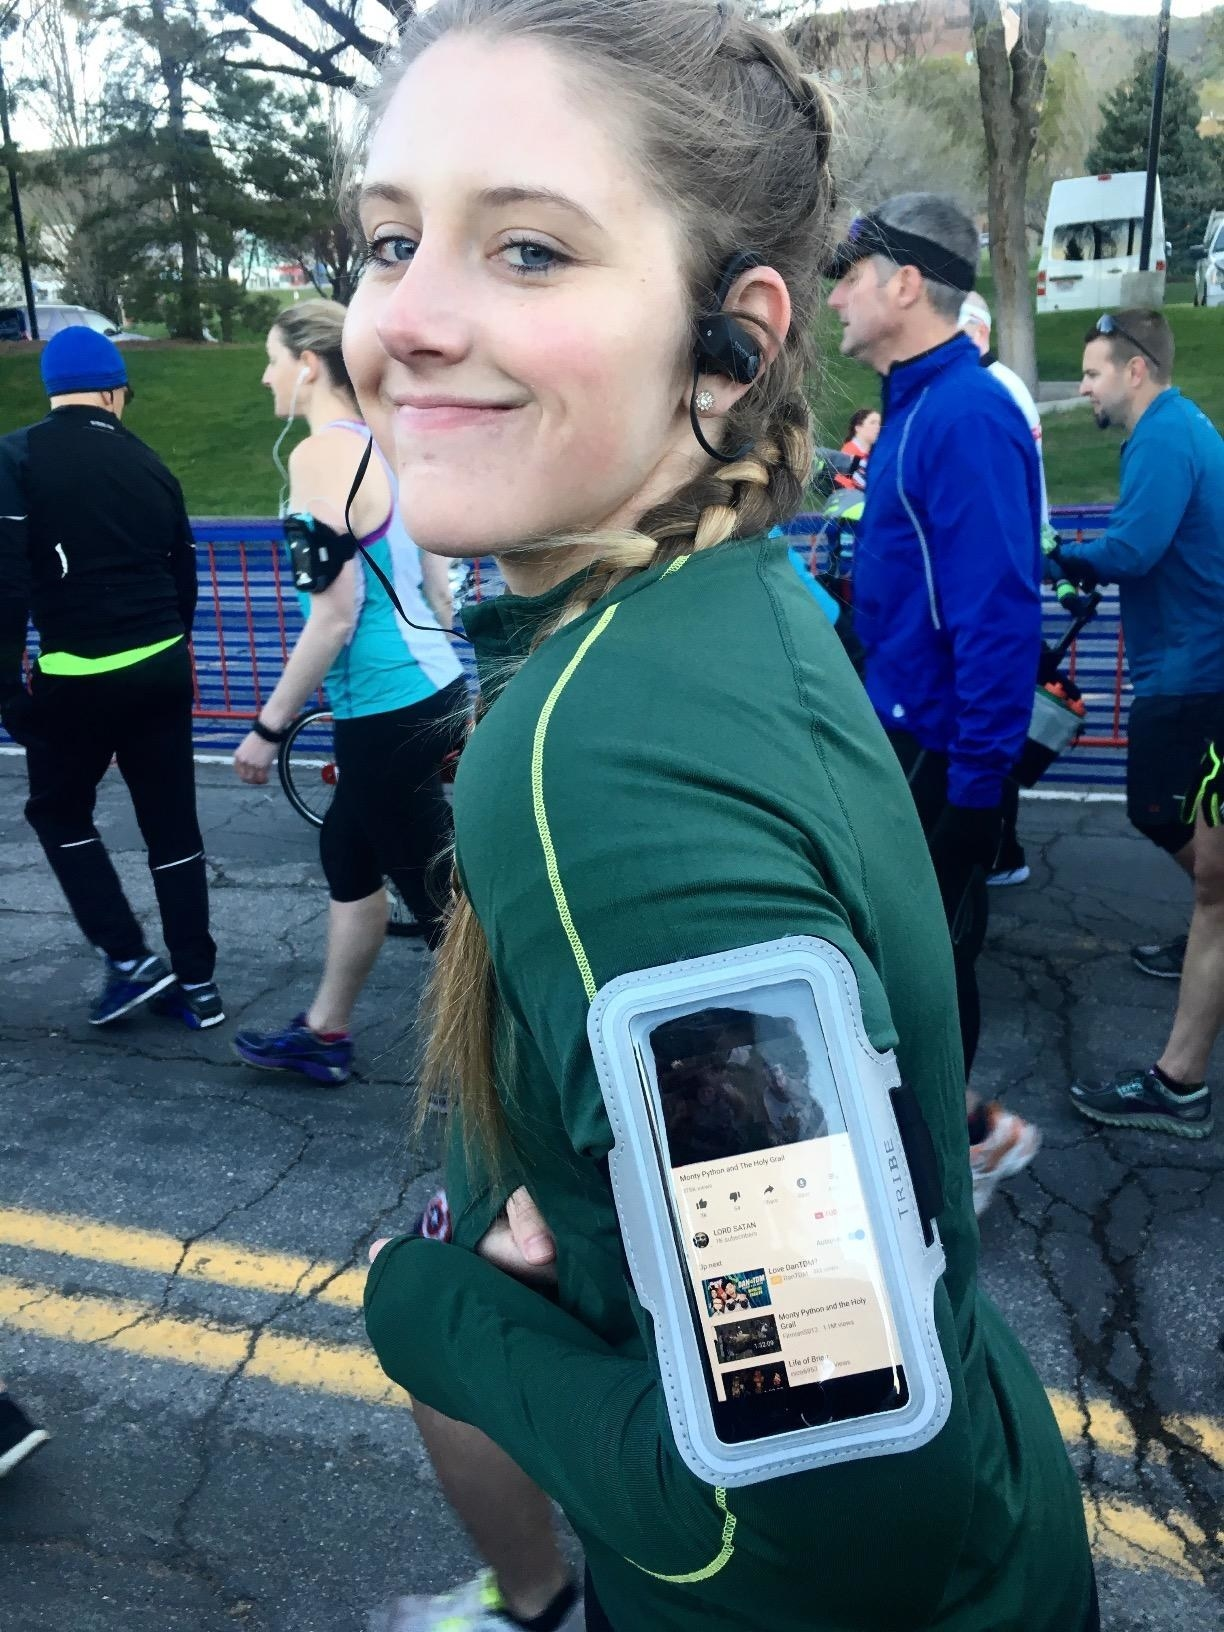 Reviewer wears light blue armband while running a marathon